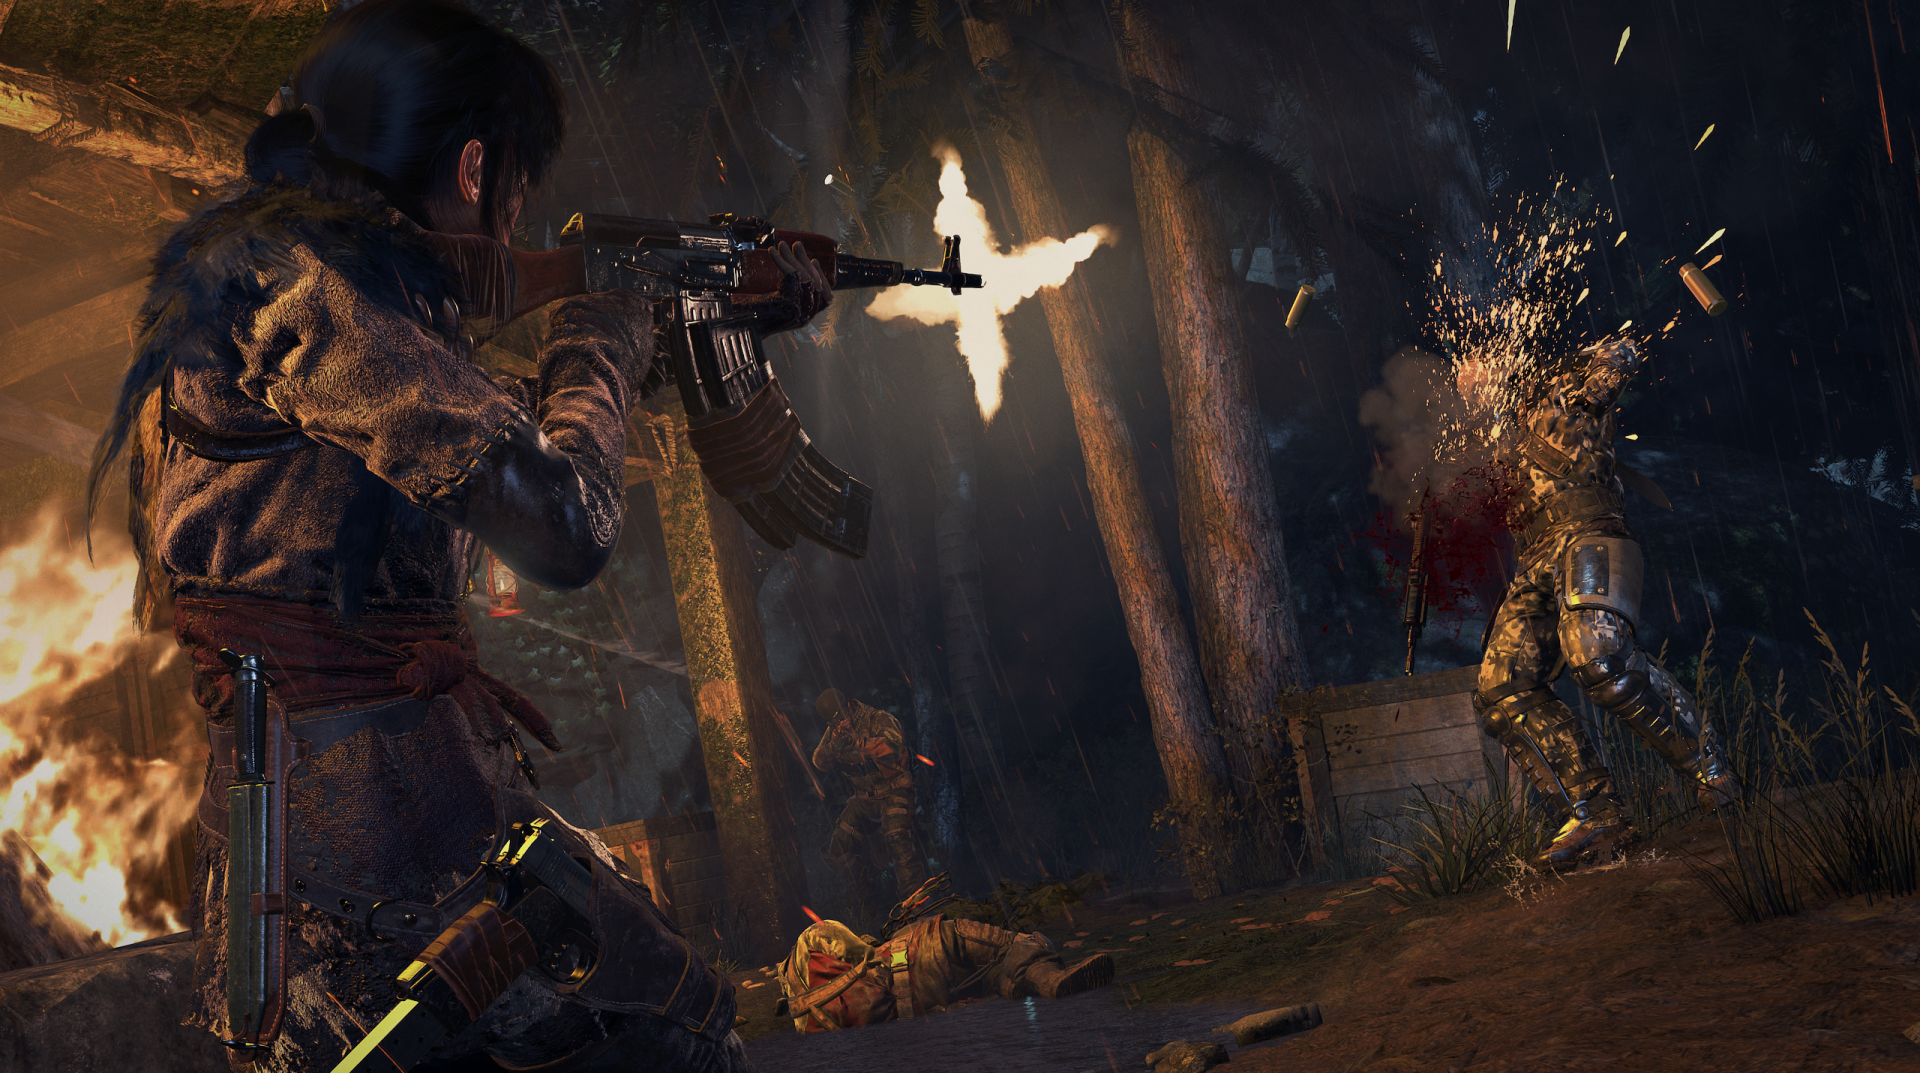 Complete Rise Of The Tomb Raider Experience Now Available For PS4